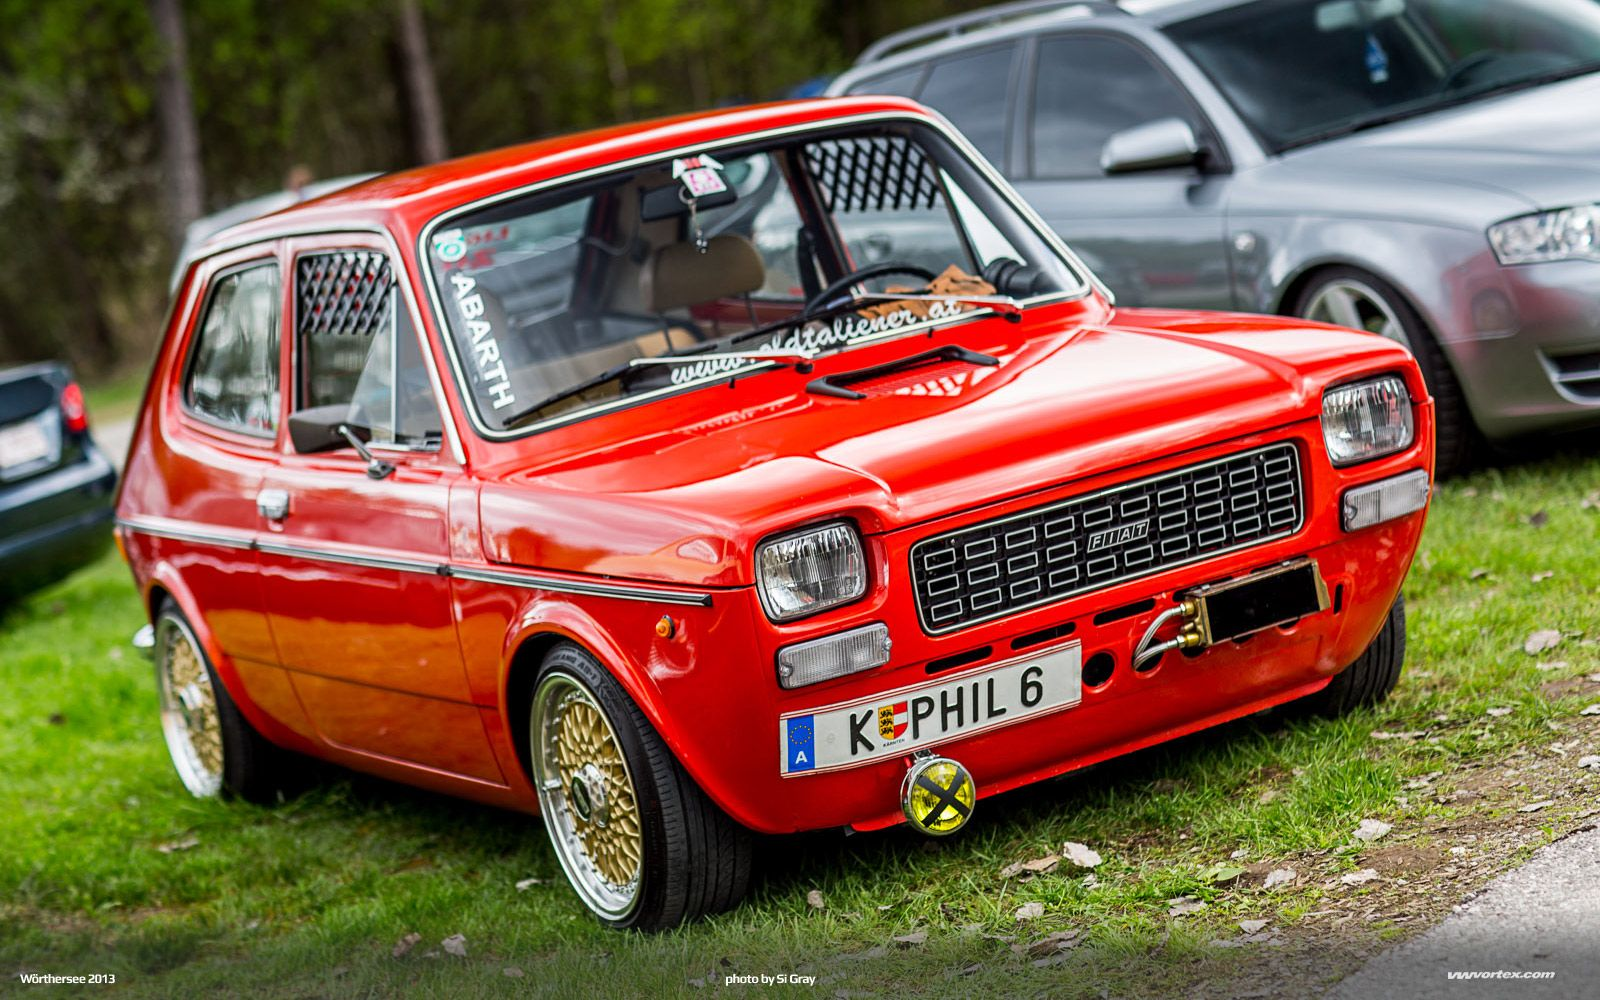 fiat 127 worthersee motorized vehicles cars trucks bikes and more pinterest cars fiat. Black Bedroom Furniture Sets. Home Design Ideas